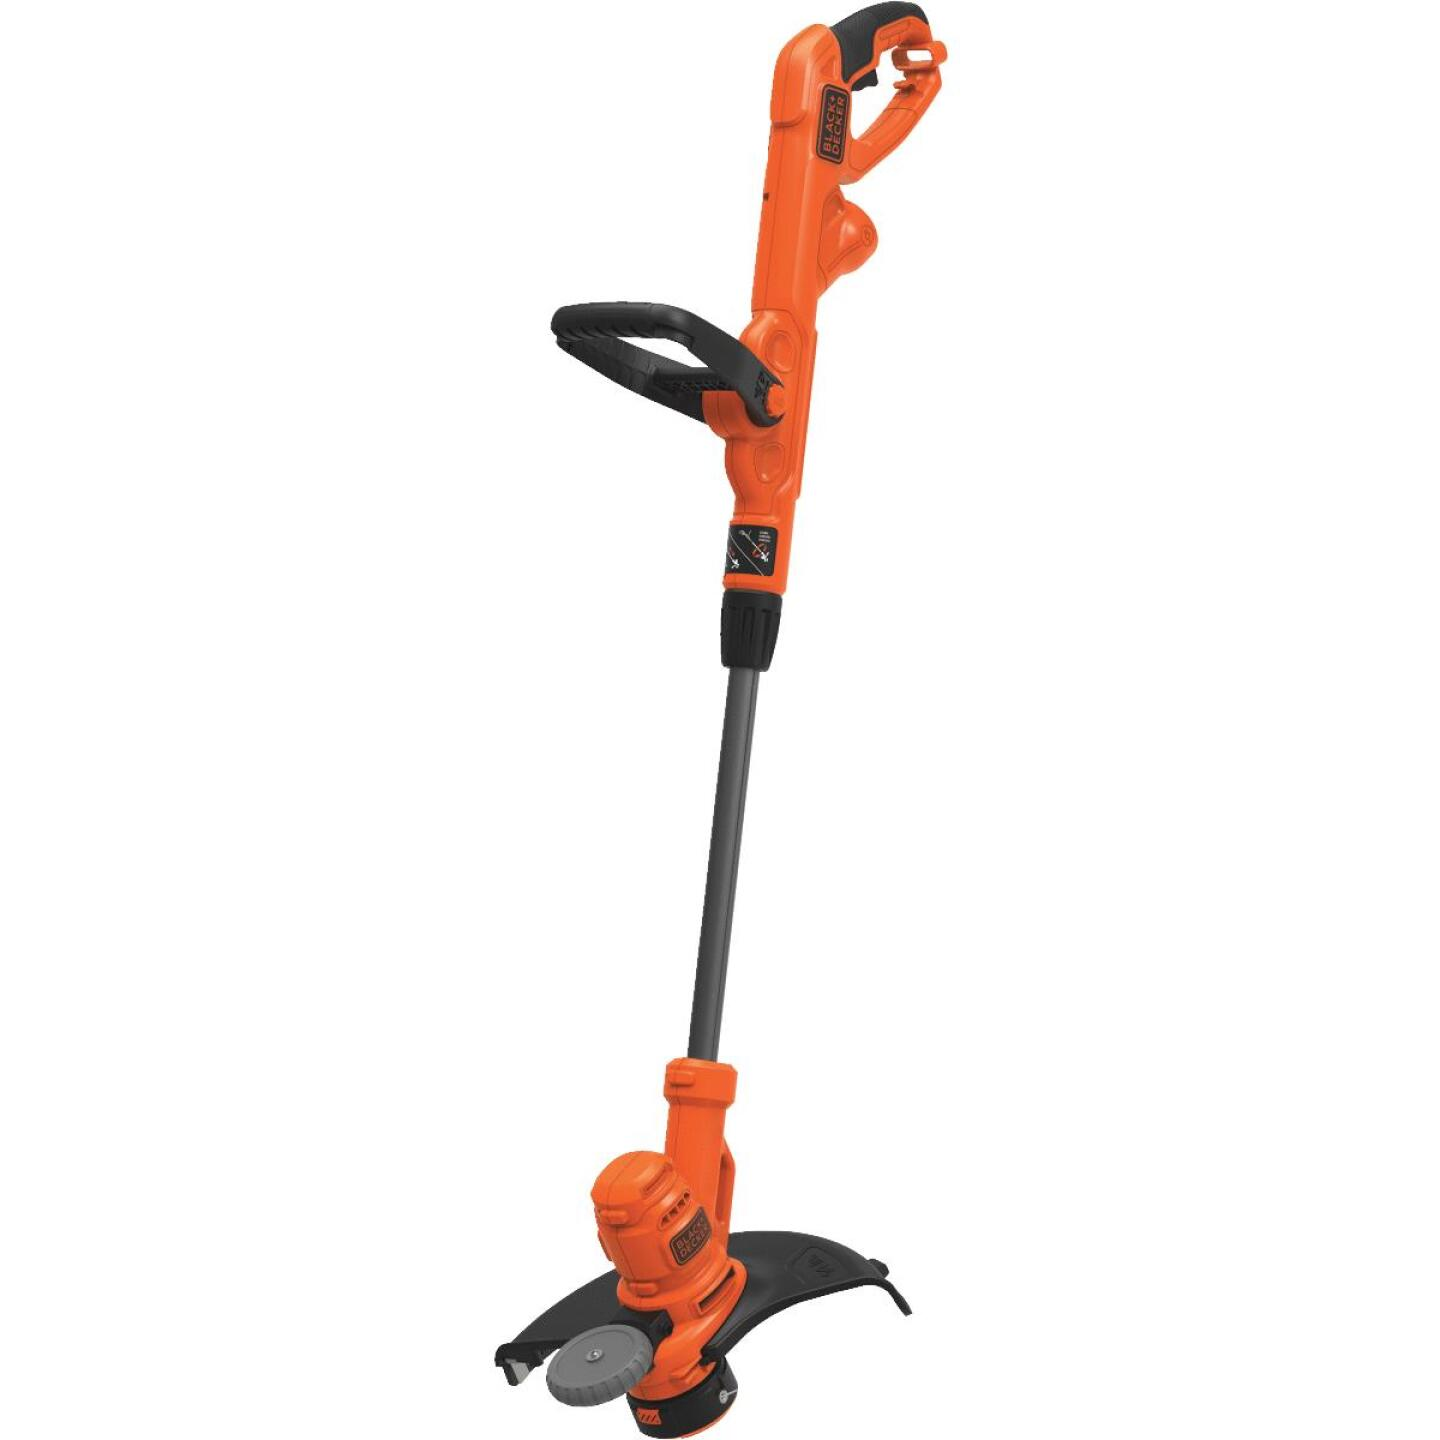 Black & Decker 14 In. 6.5-Amp Straight Shaft Corded Electric String Trimmer Edger Image 1